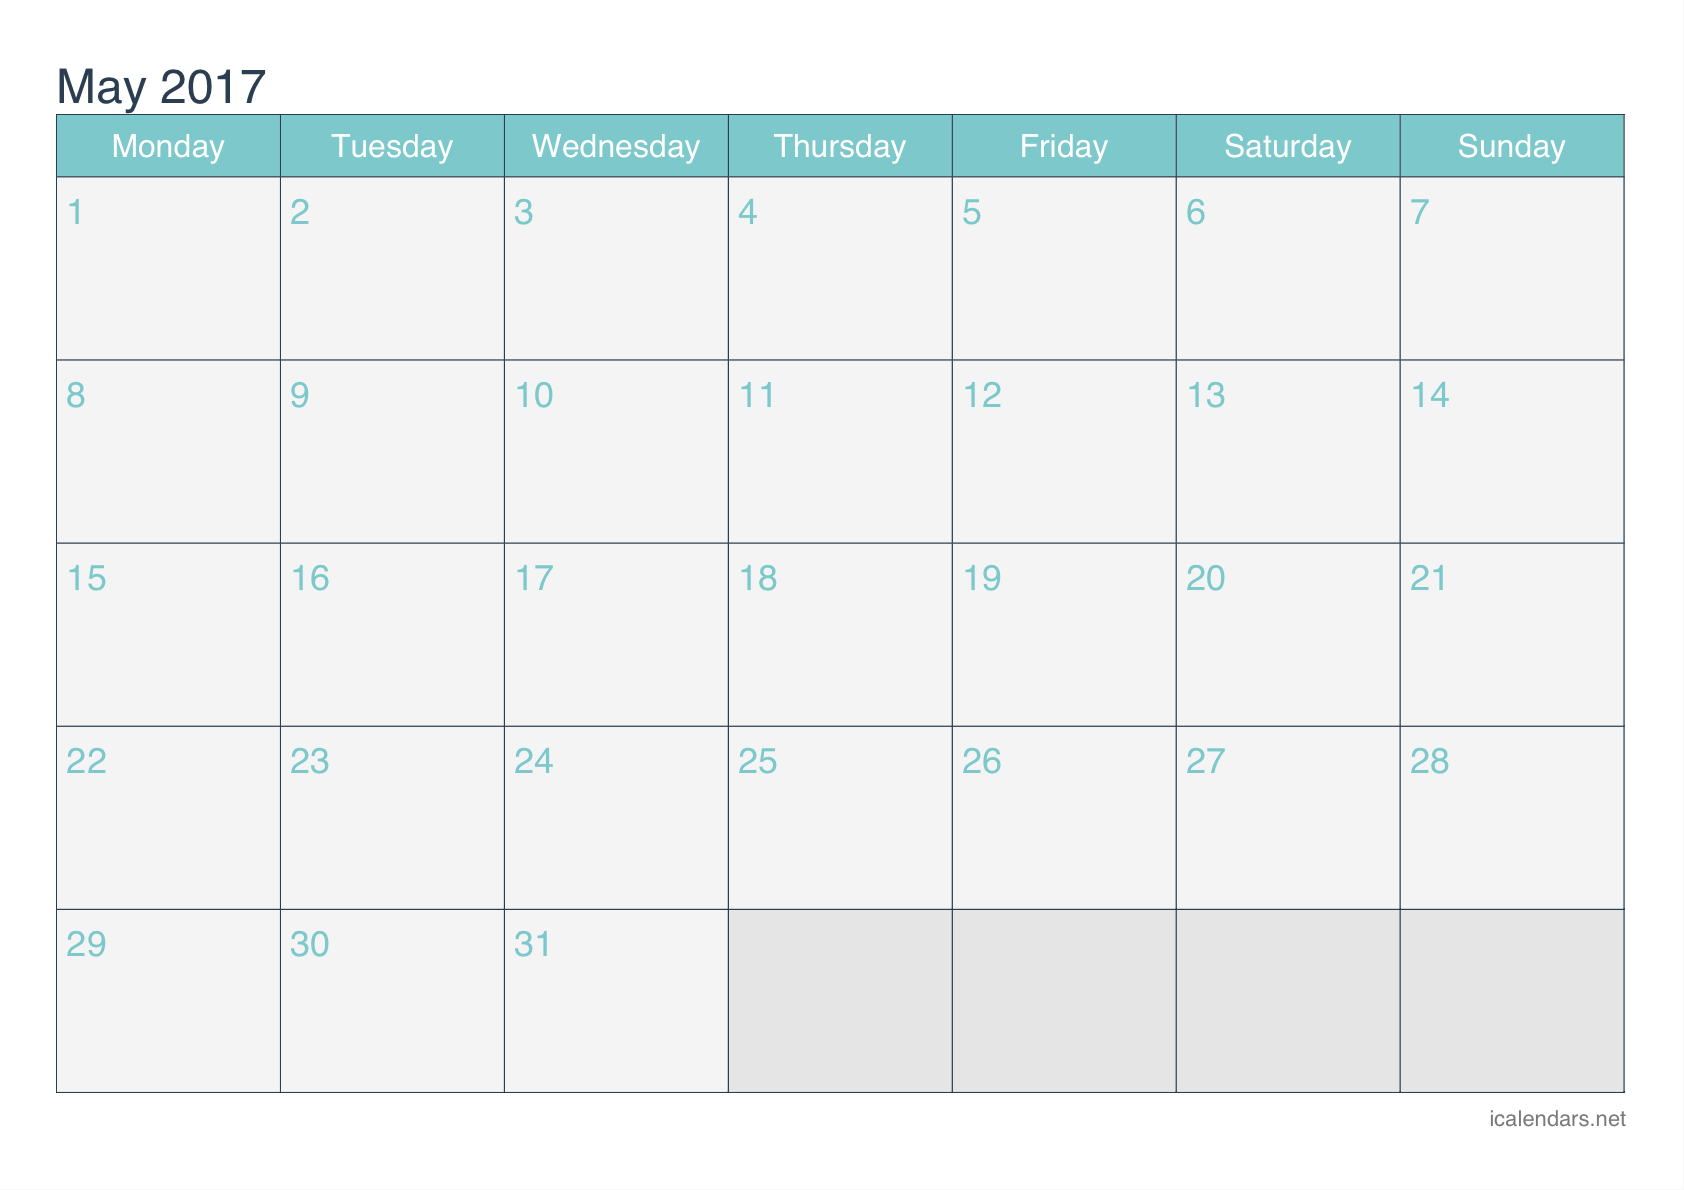 Printable Calendar of May 2017